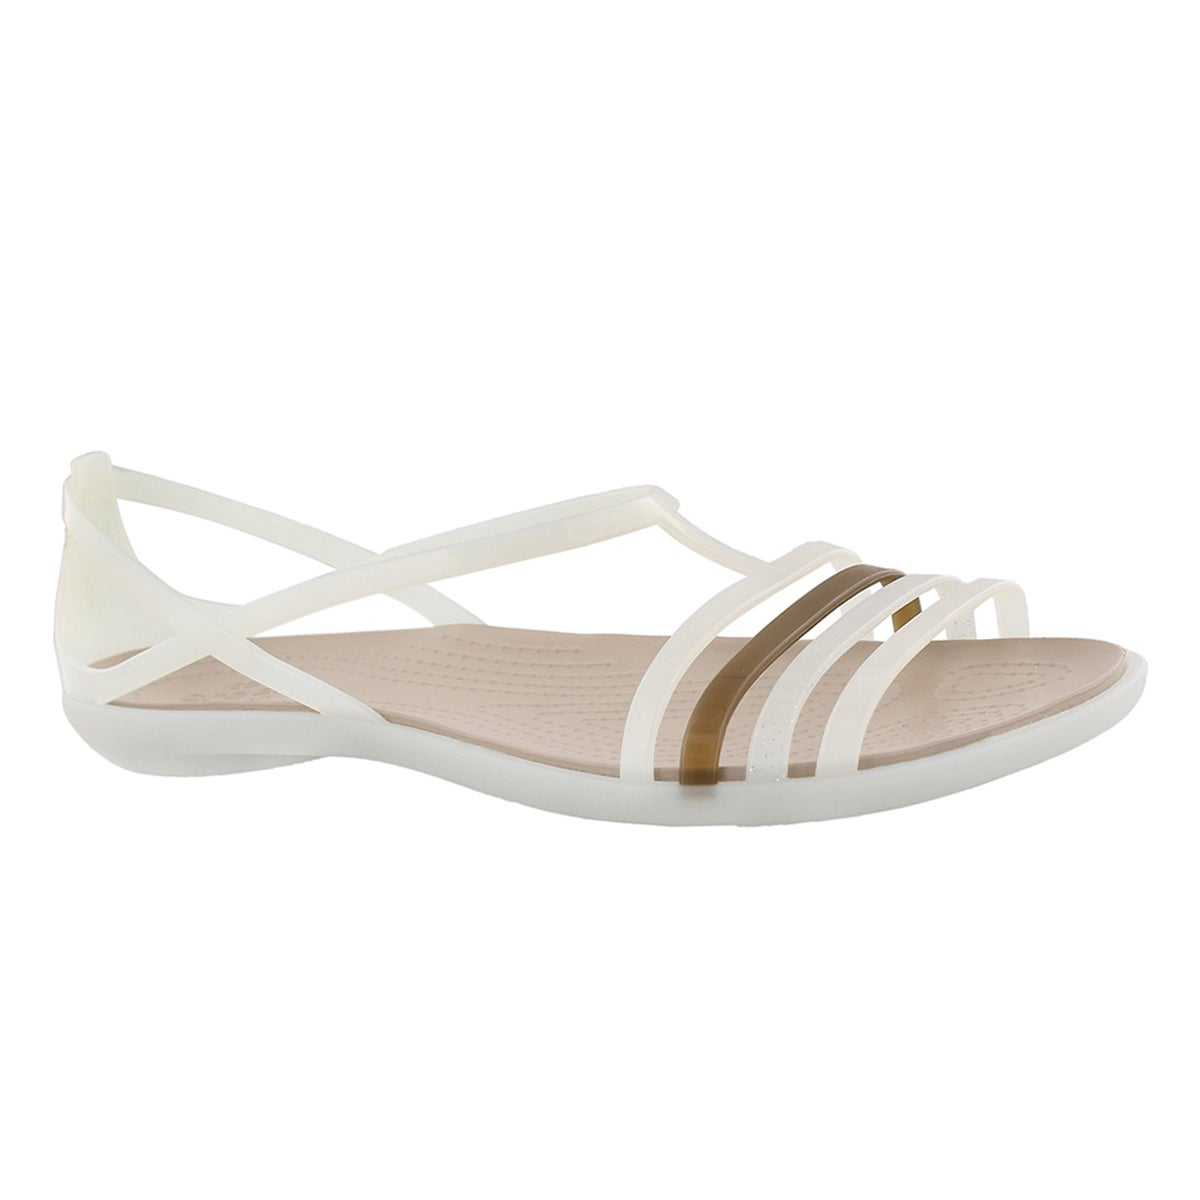 Women's ISABELLA oyster/walnut sandals